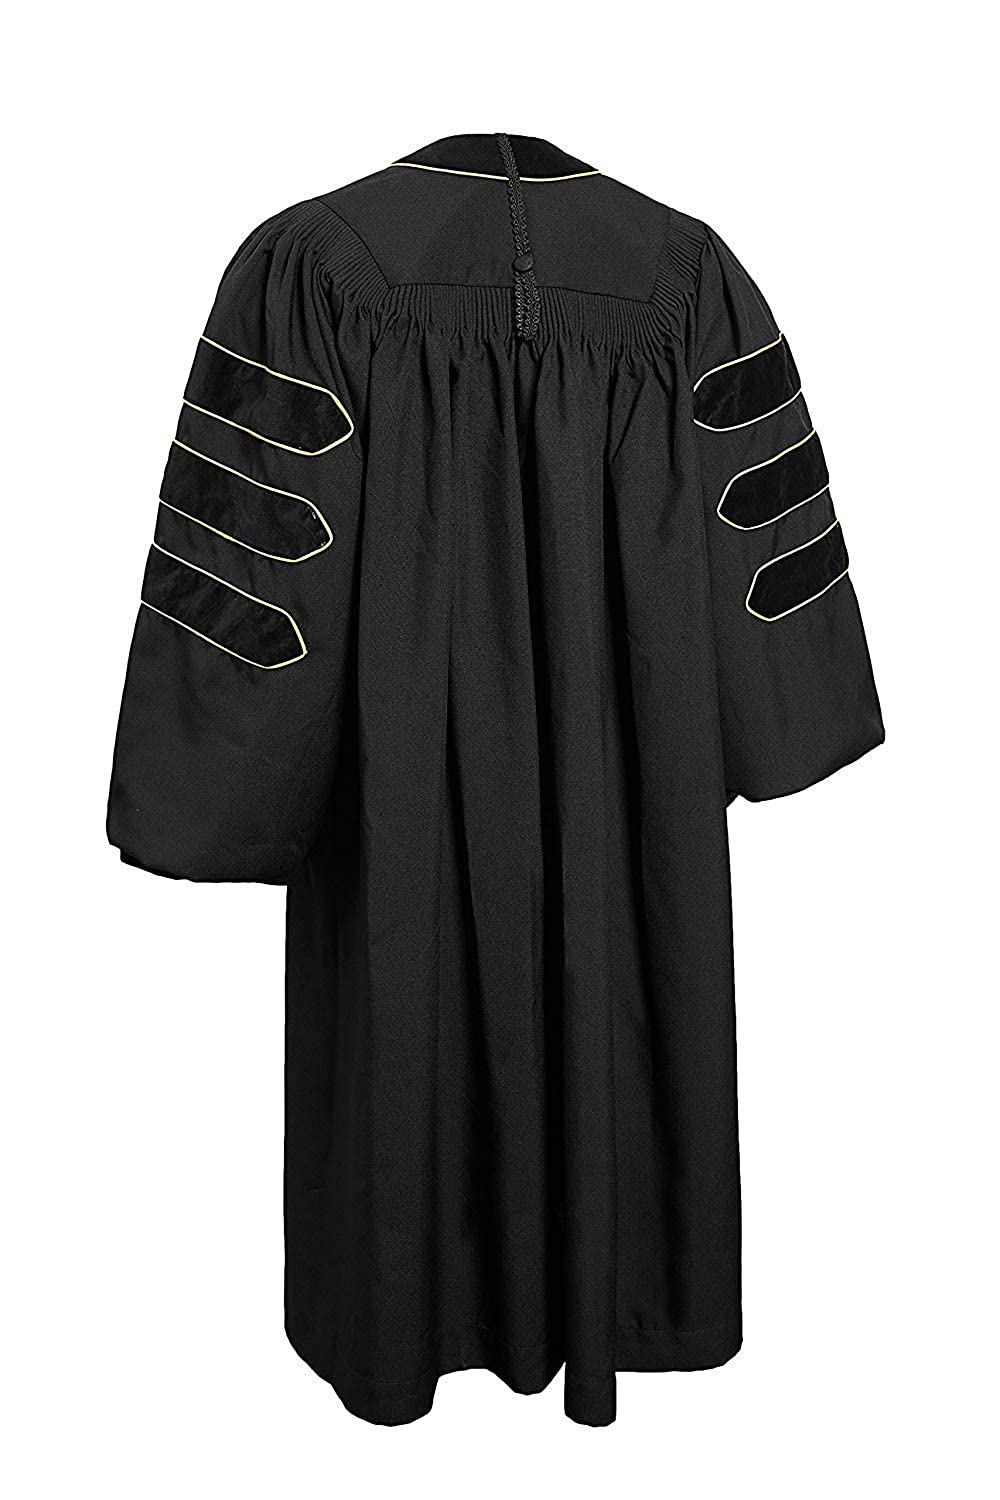 4b010ae504 Amazon.com  GraduationMall Deluxe Doctoral Graduation Gown for Faculty and Professor  Phd Blue Velvet with Gold Piping  Clothing